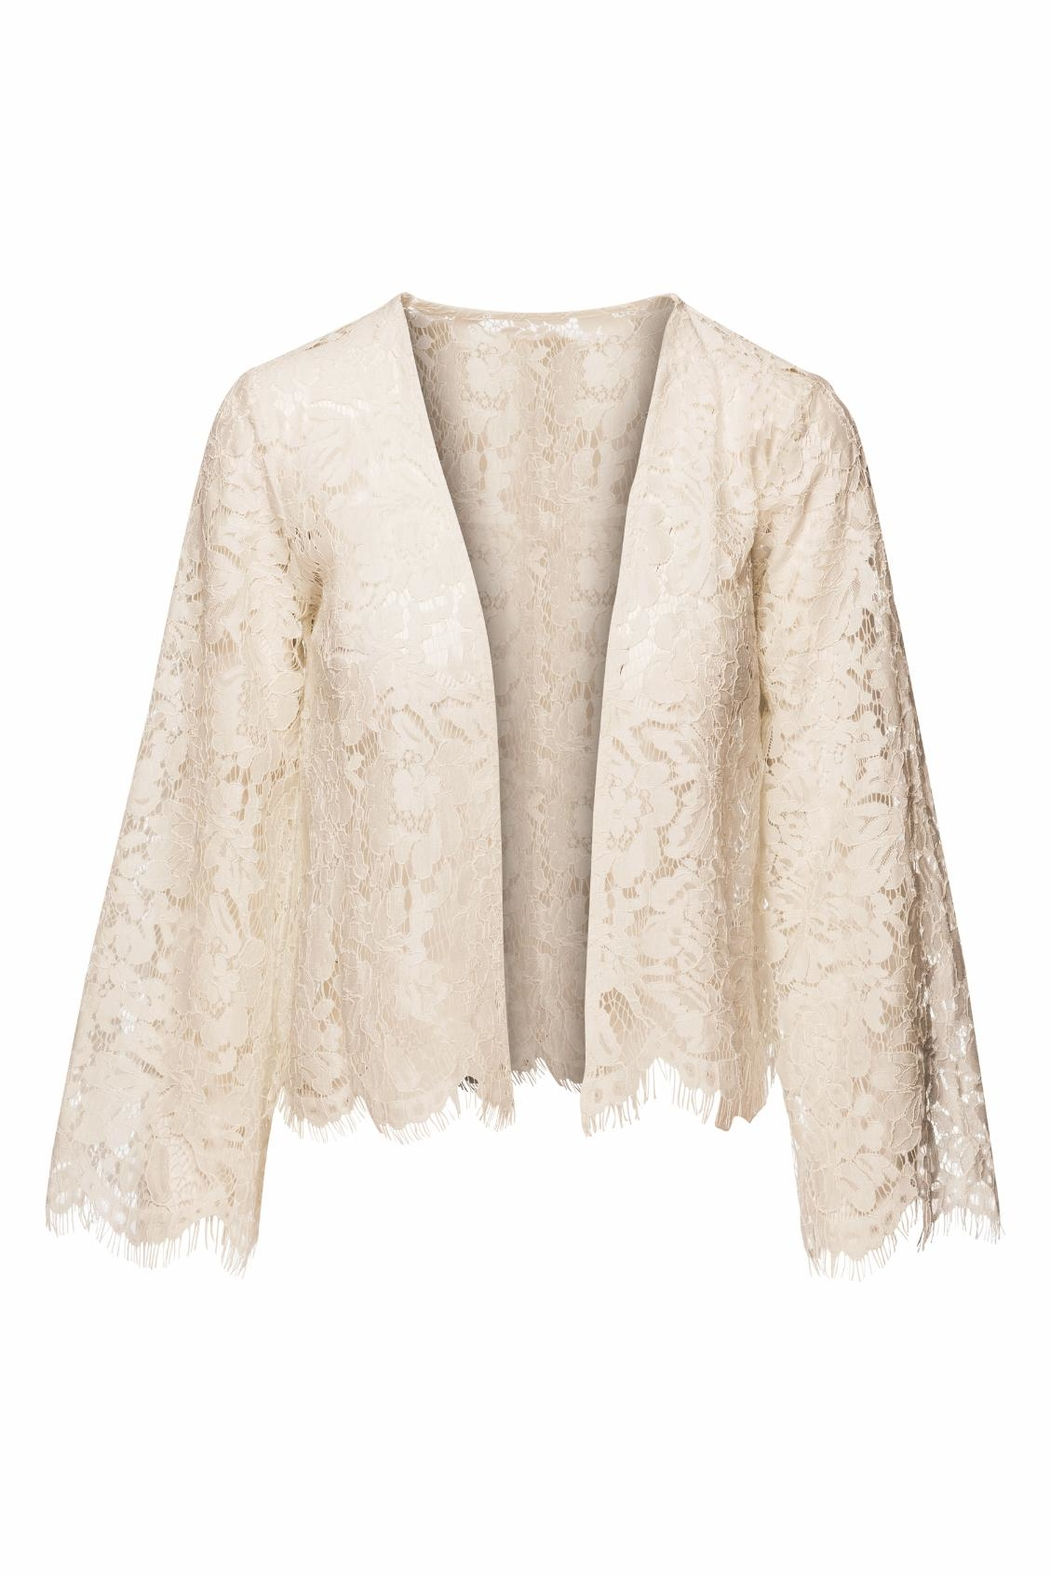 Chaser LA Open Front Lace Cardigan - Main Image